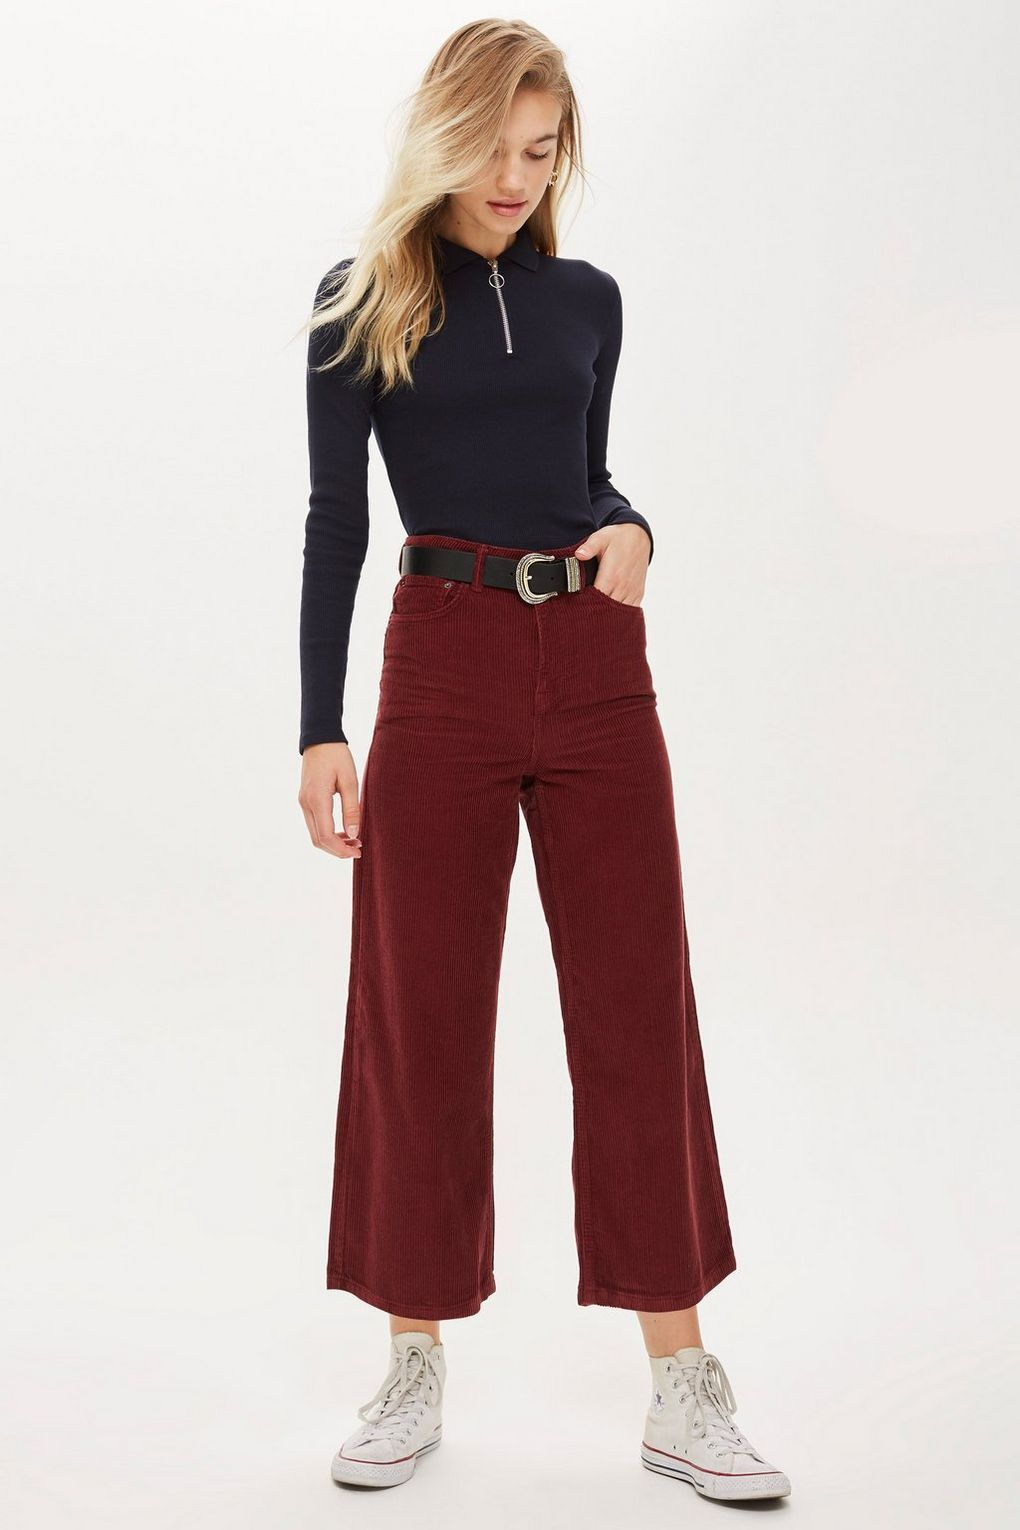 ff8a2f68f44f6 Plum Cropped Wide Leg Jeans - New In Fashion - New In - Topshop USA ...